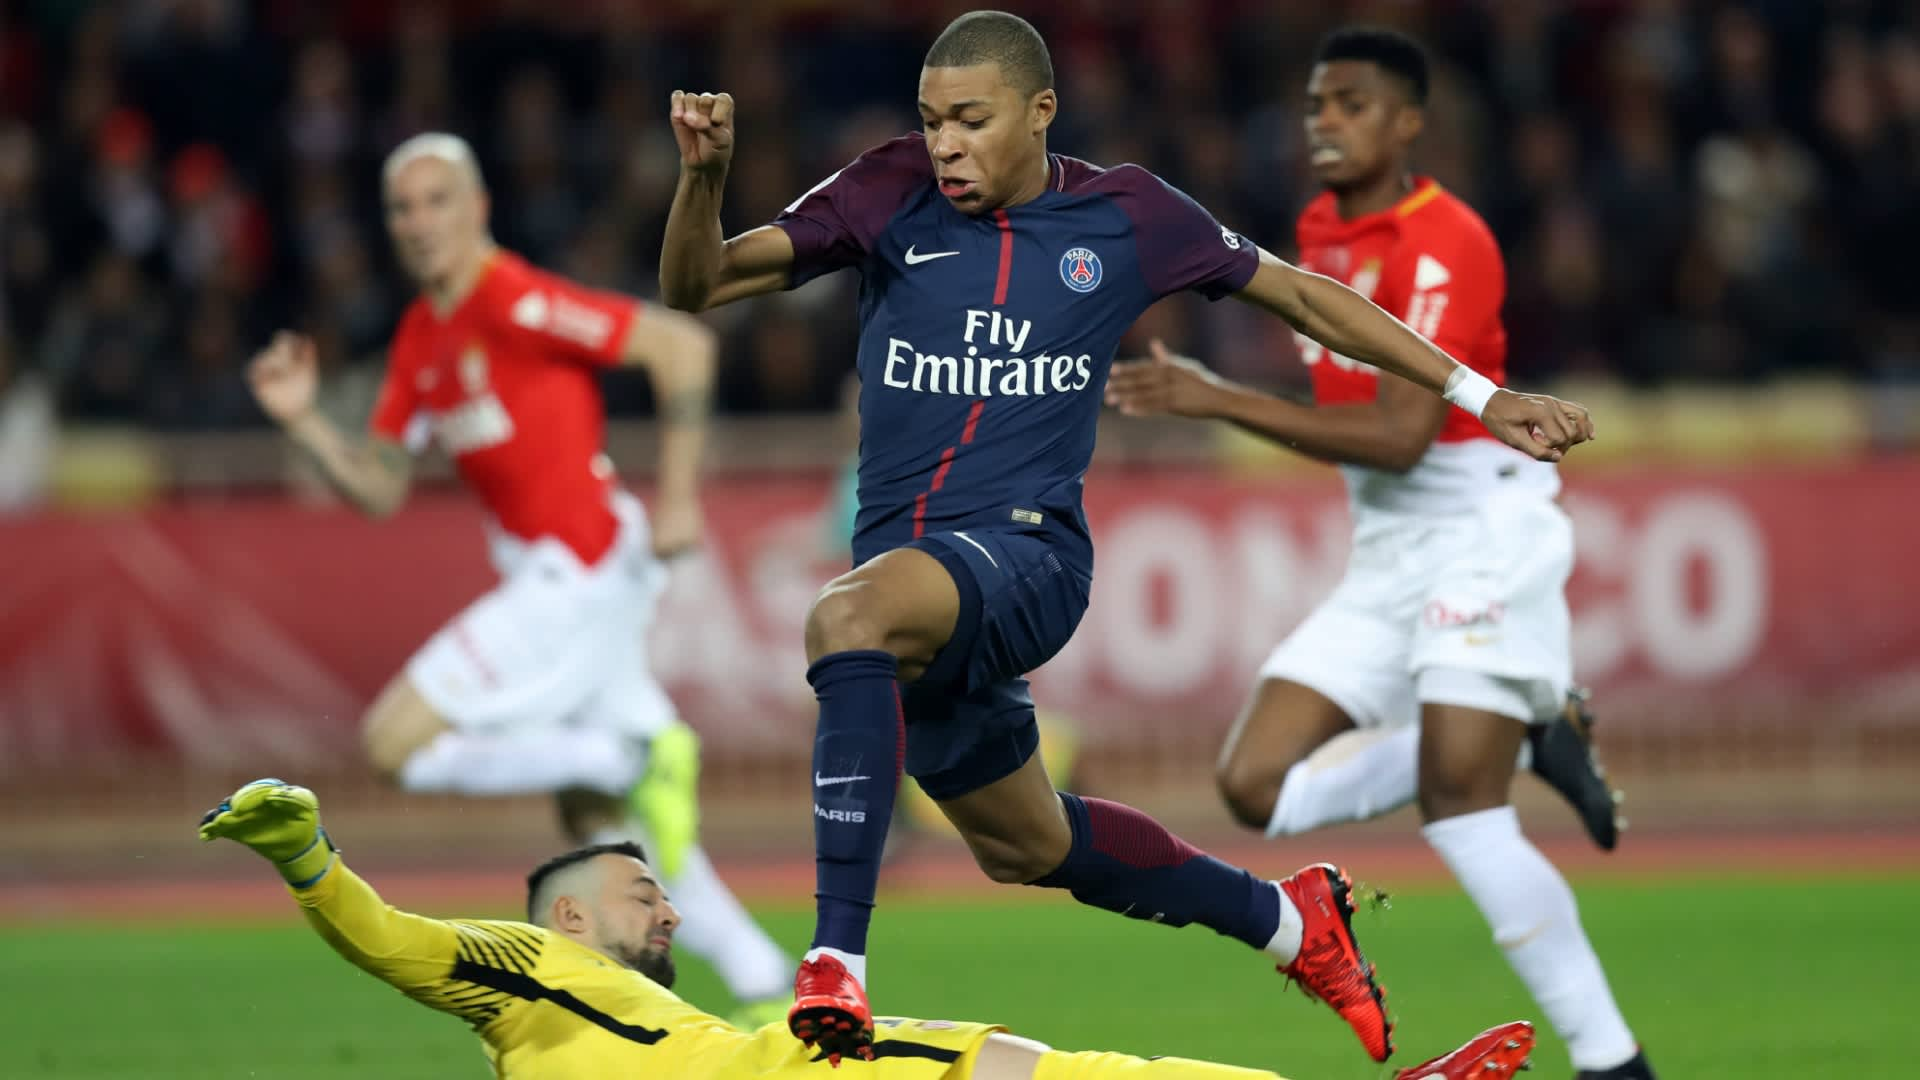 Kylian Mbappe failed to score against AS Monaco, his former team